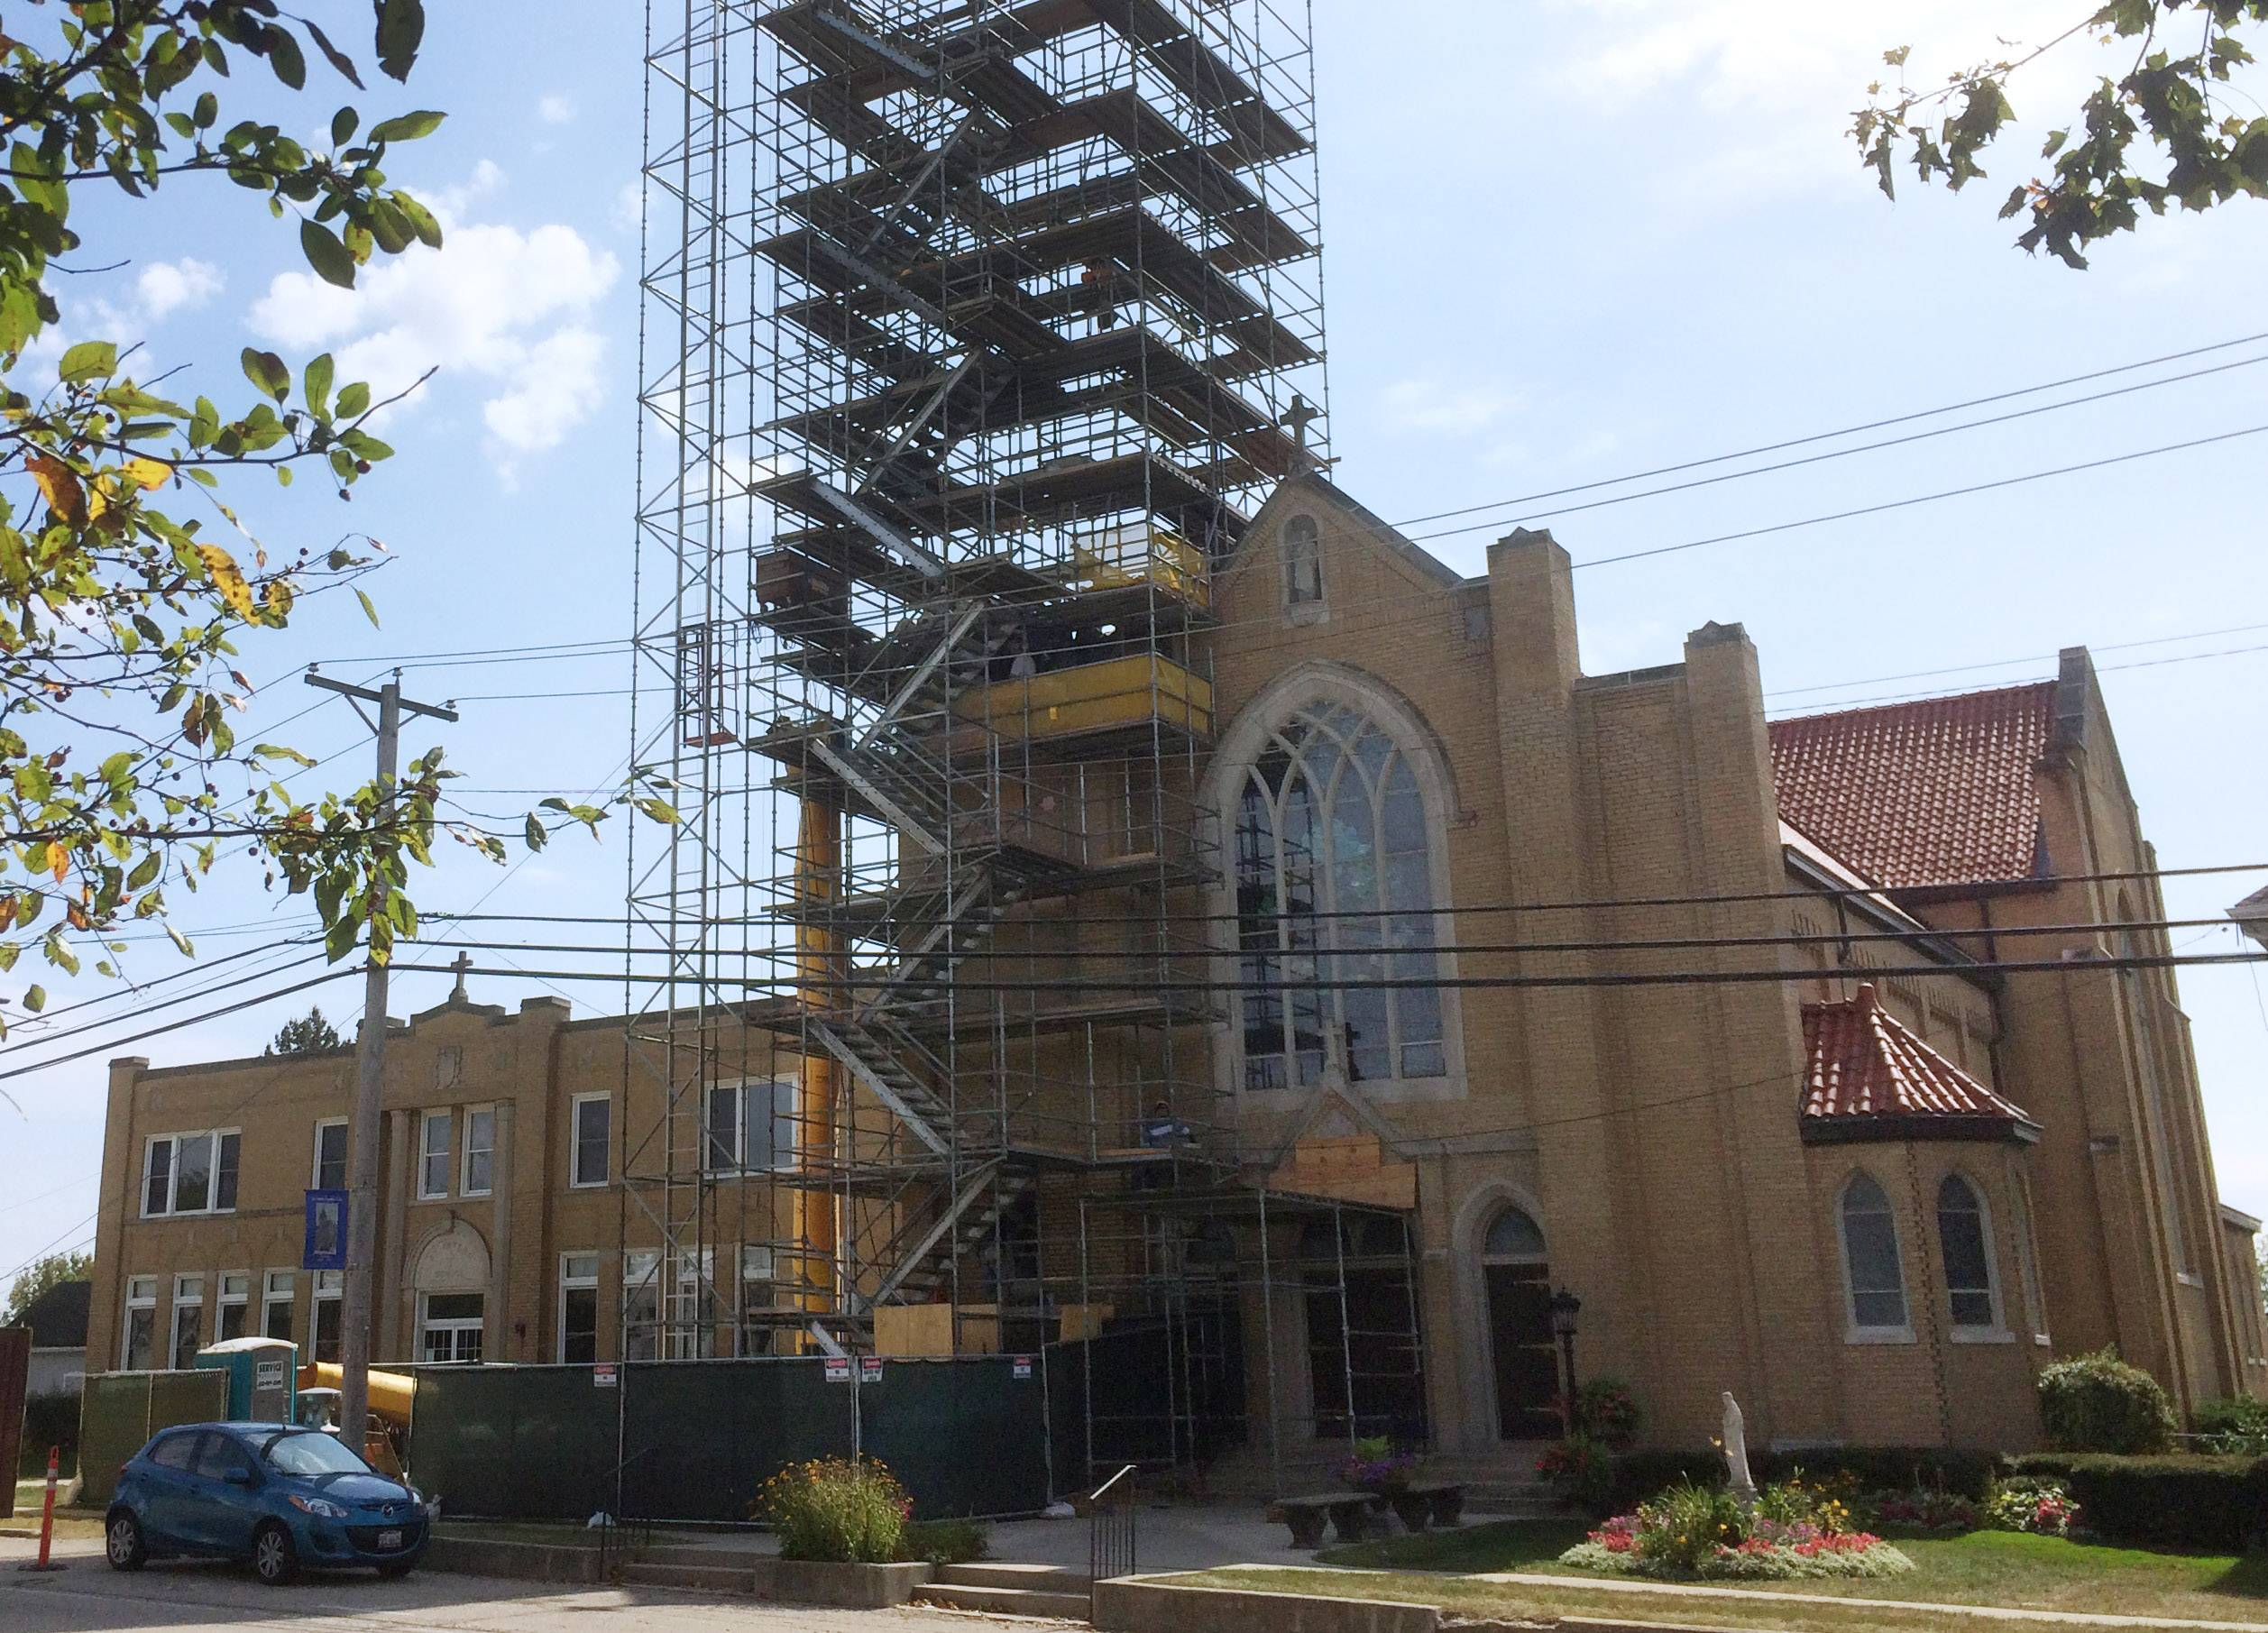 St. Peter Church in Volo is marking its 150th anniversary by restoring the original bell tower and spire removed after being damaged by lightning in 1961.